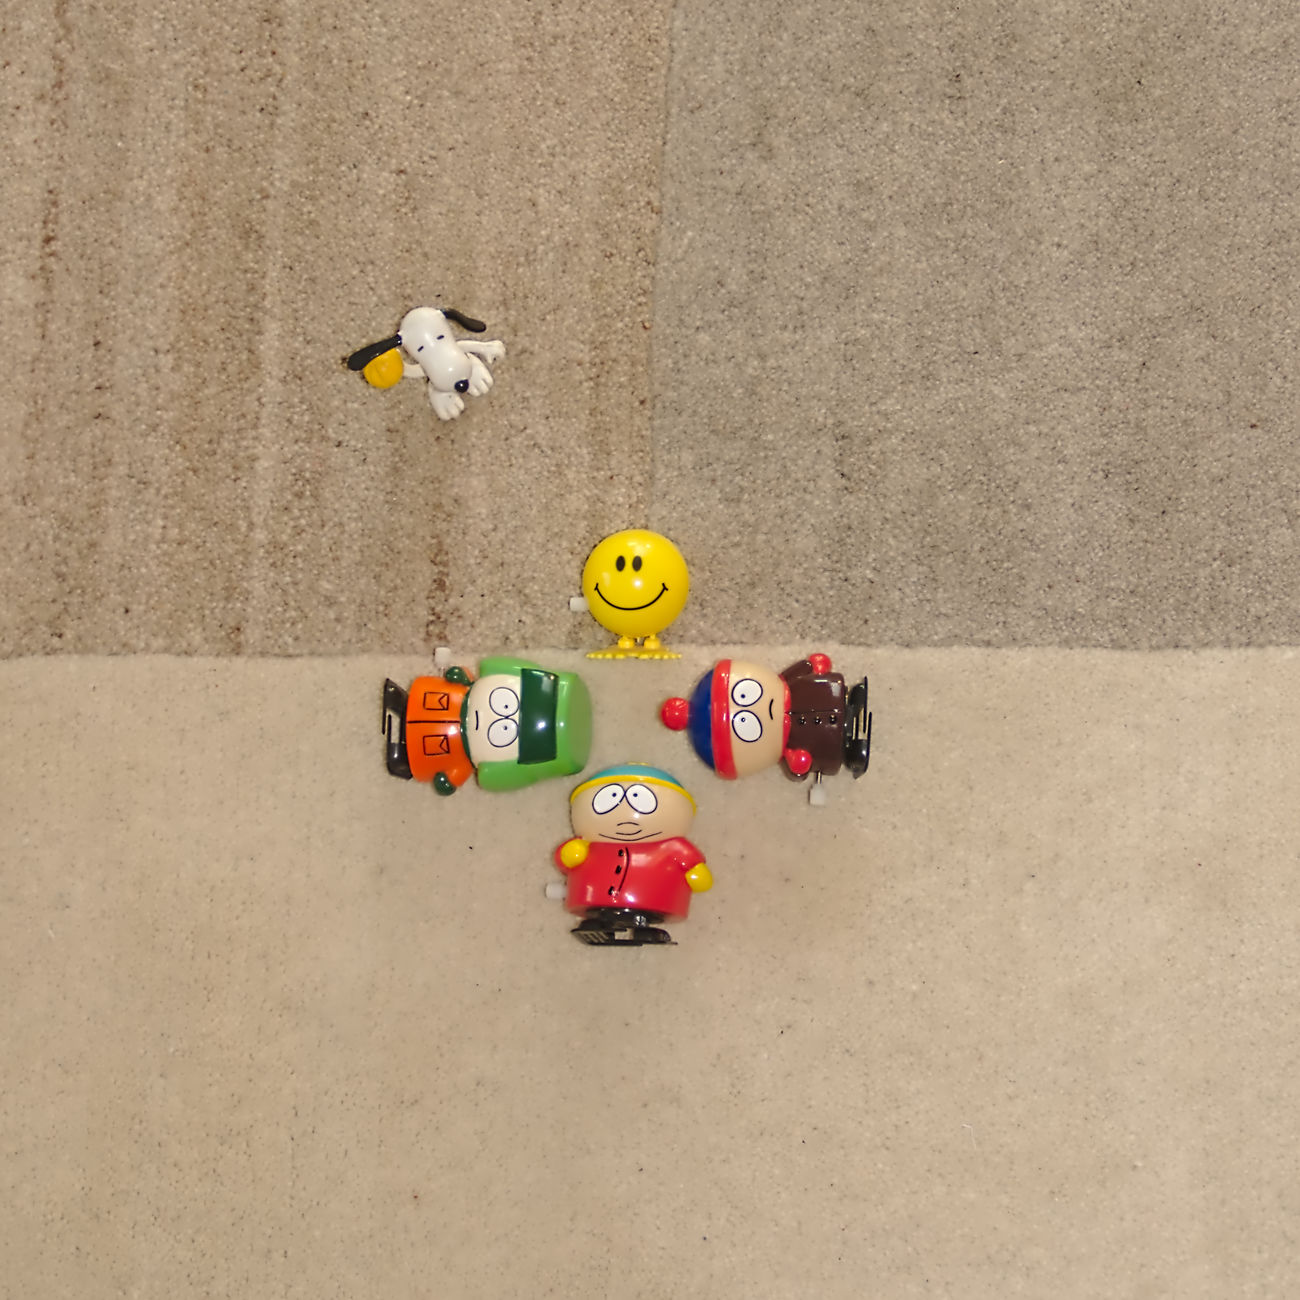 at the playground ④ : ) Best Friends Cartman Catch The Moment Central Eric Faces Figurine  Flying High From My Point Of View Fun Geometric Shapes High Angle View Kayl Multi Colored Nikon Red SMILY FACE Southpark Sports Photography STAN Still Life Telling Stories Differently Toy Adventures Yellow